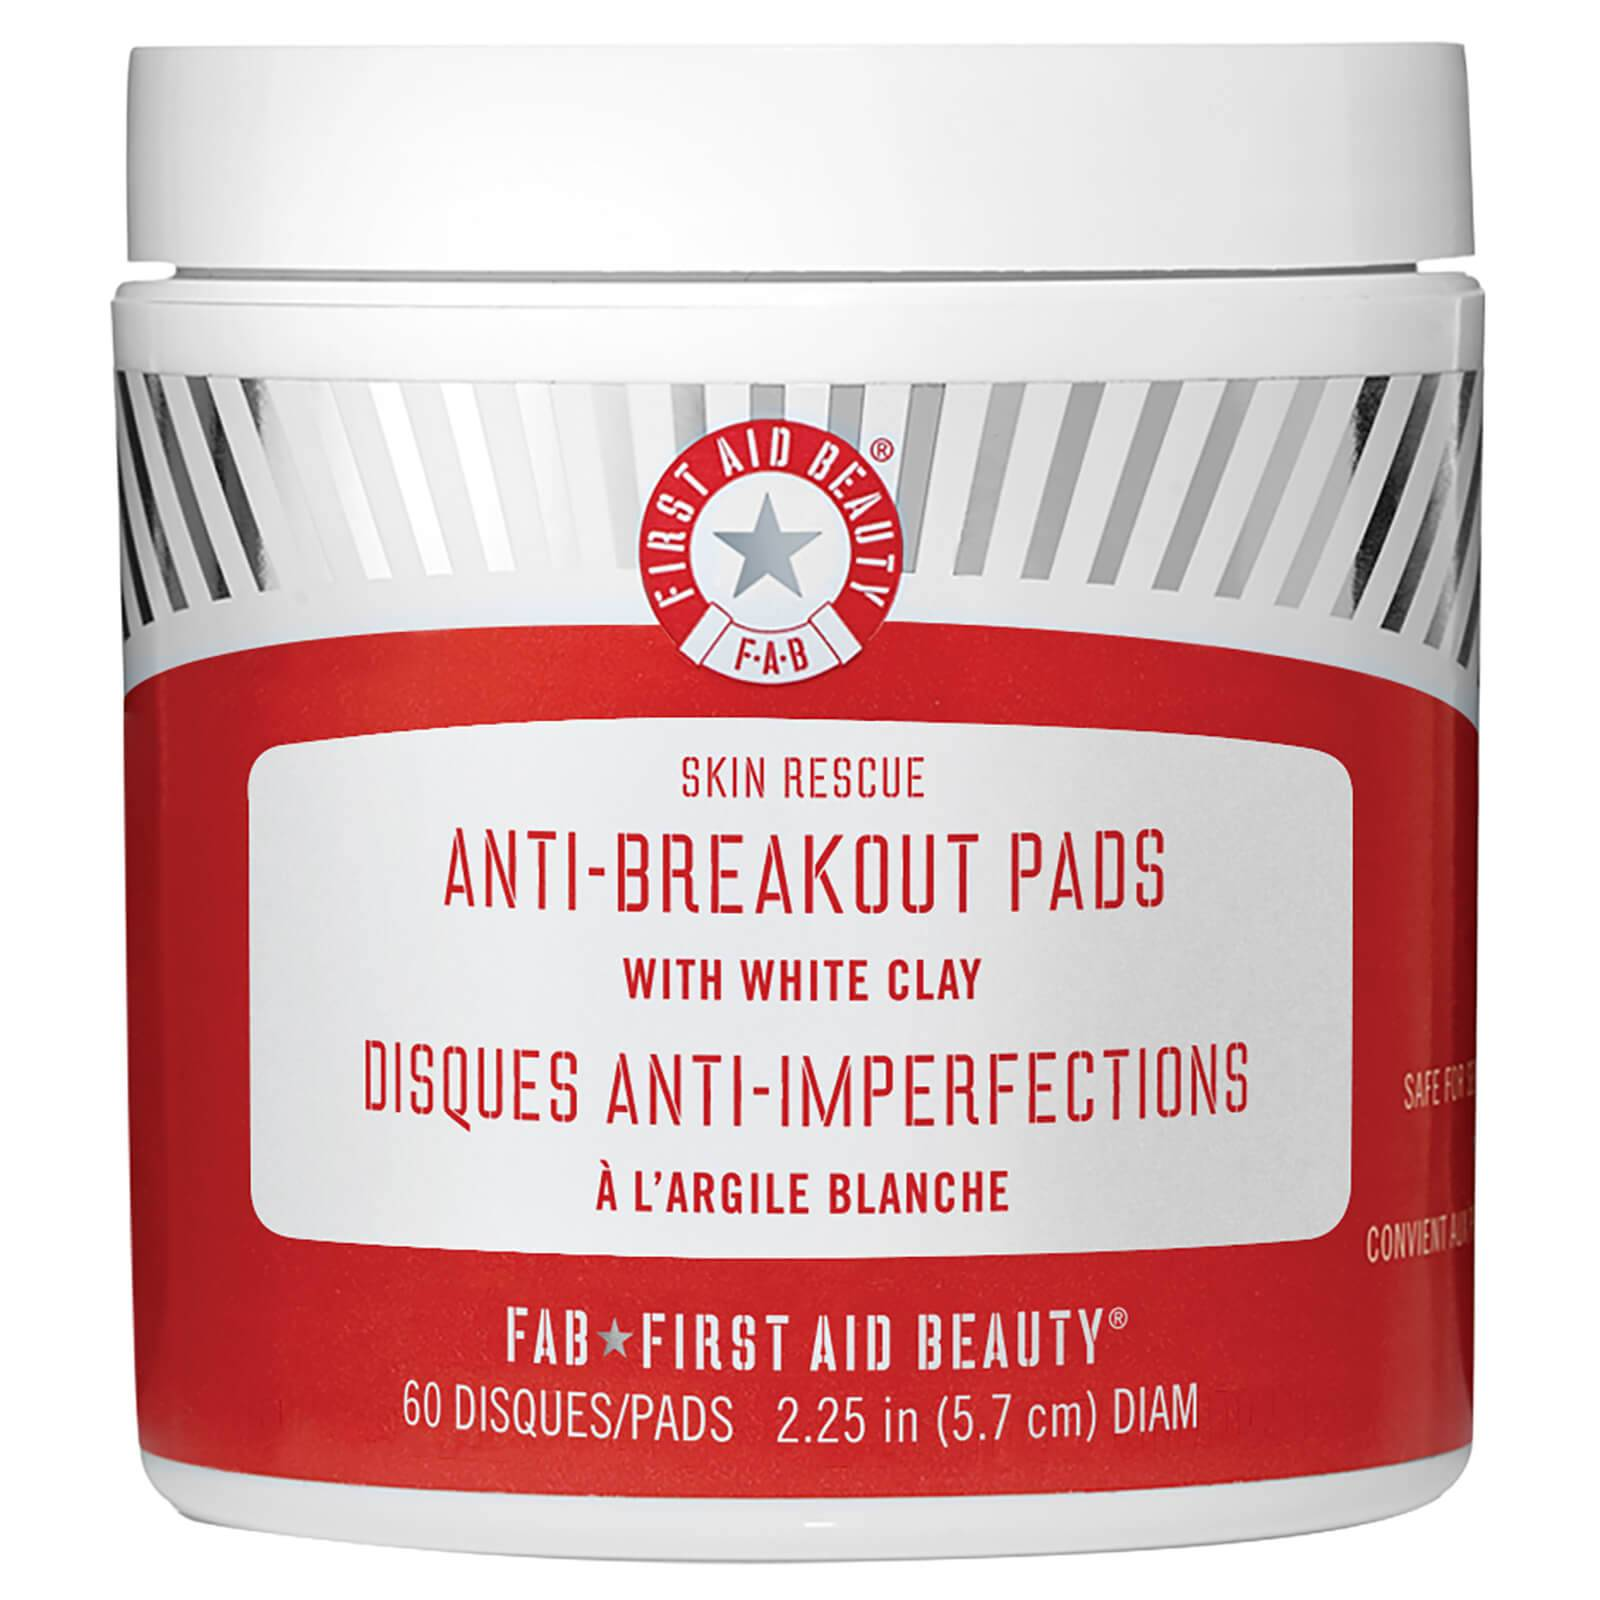 First Aid Beauty Disques Anti-Imperfections à l'Argile Blanche First Aid Beauty